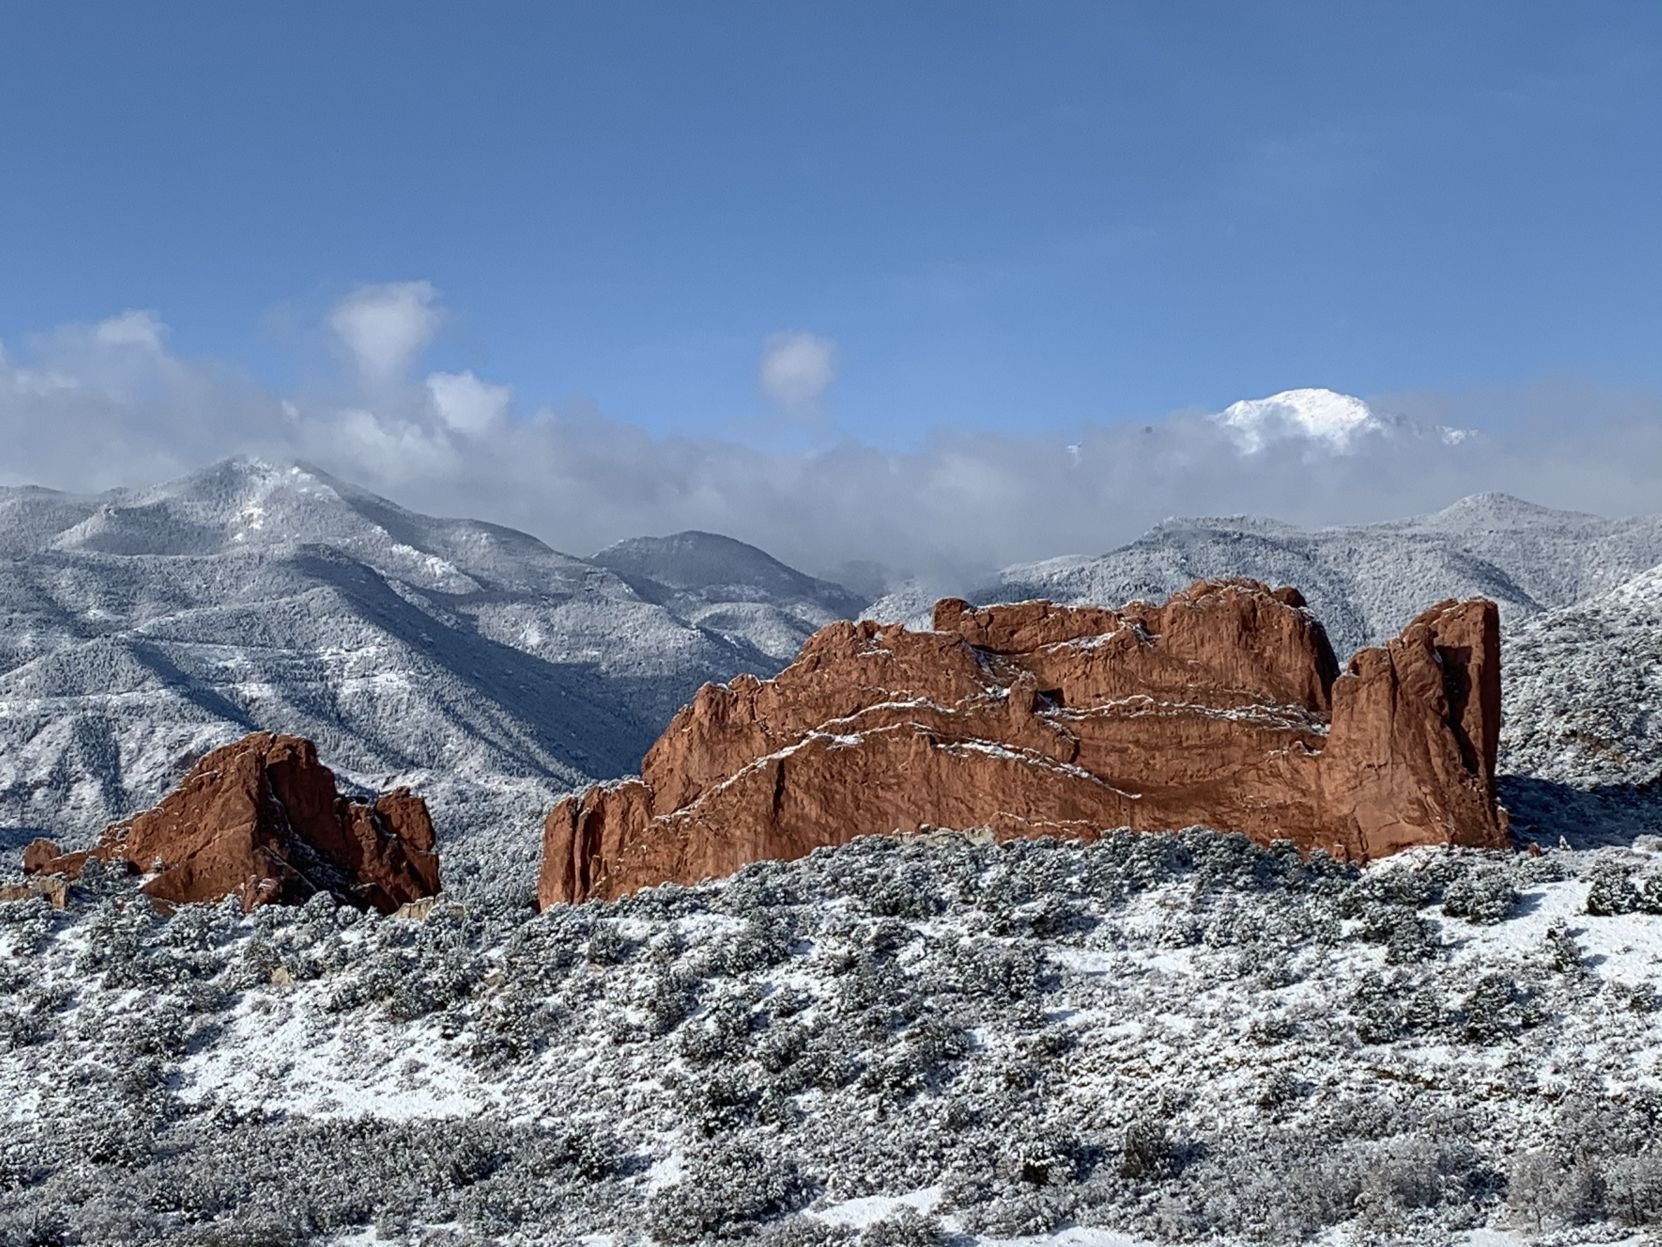 More heavy snow, cold headed to the Colorado Springs area